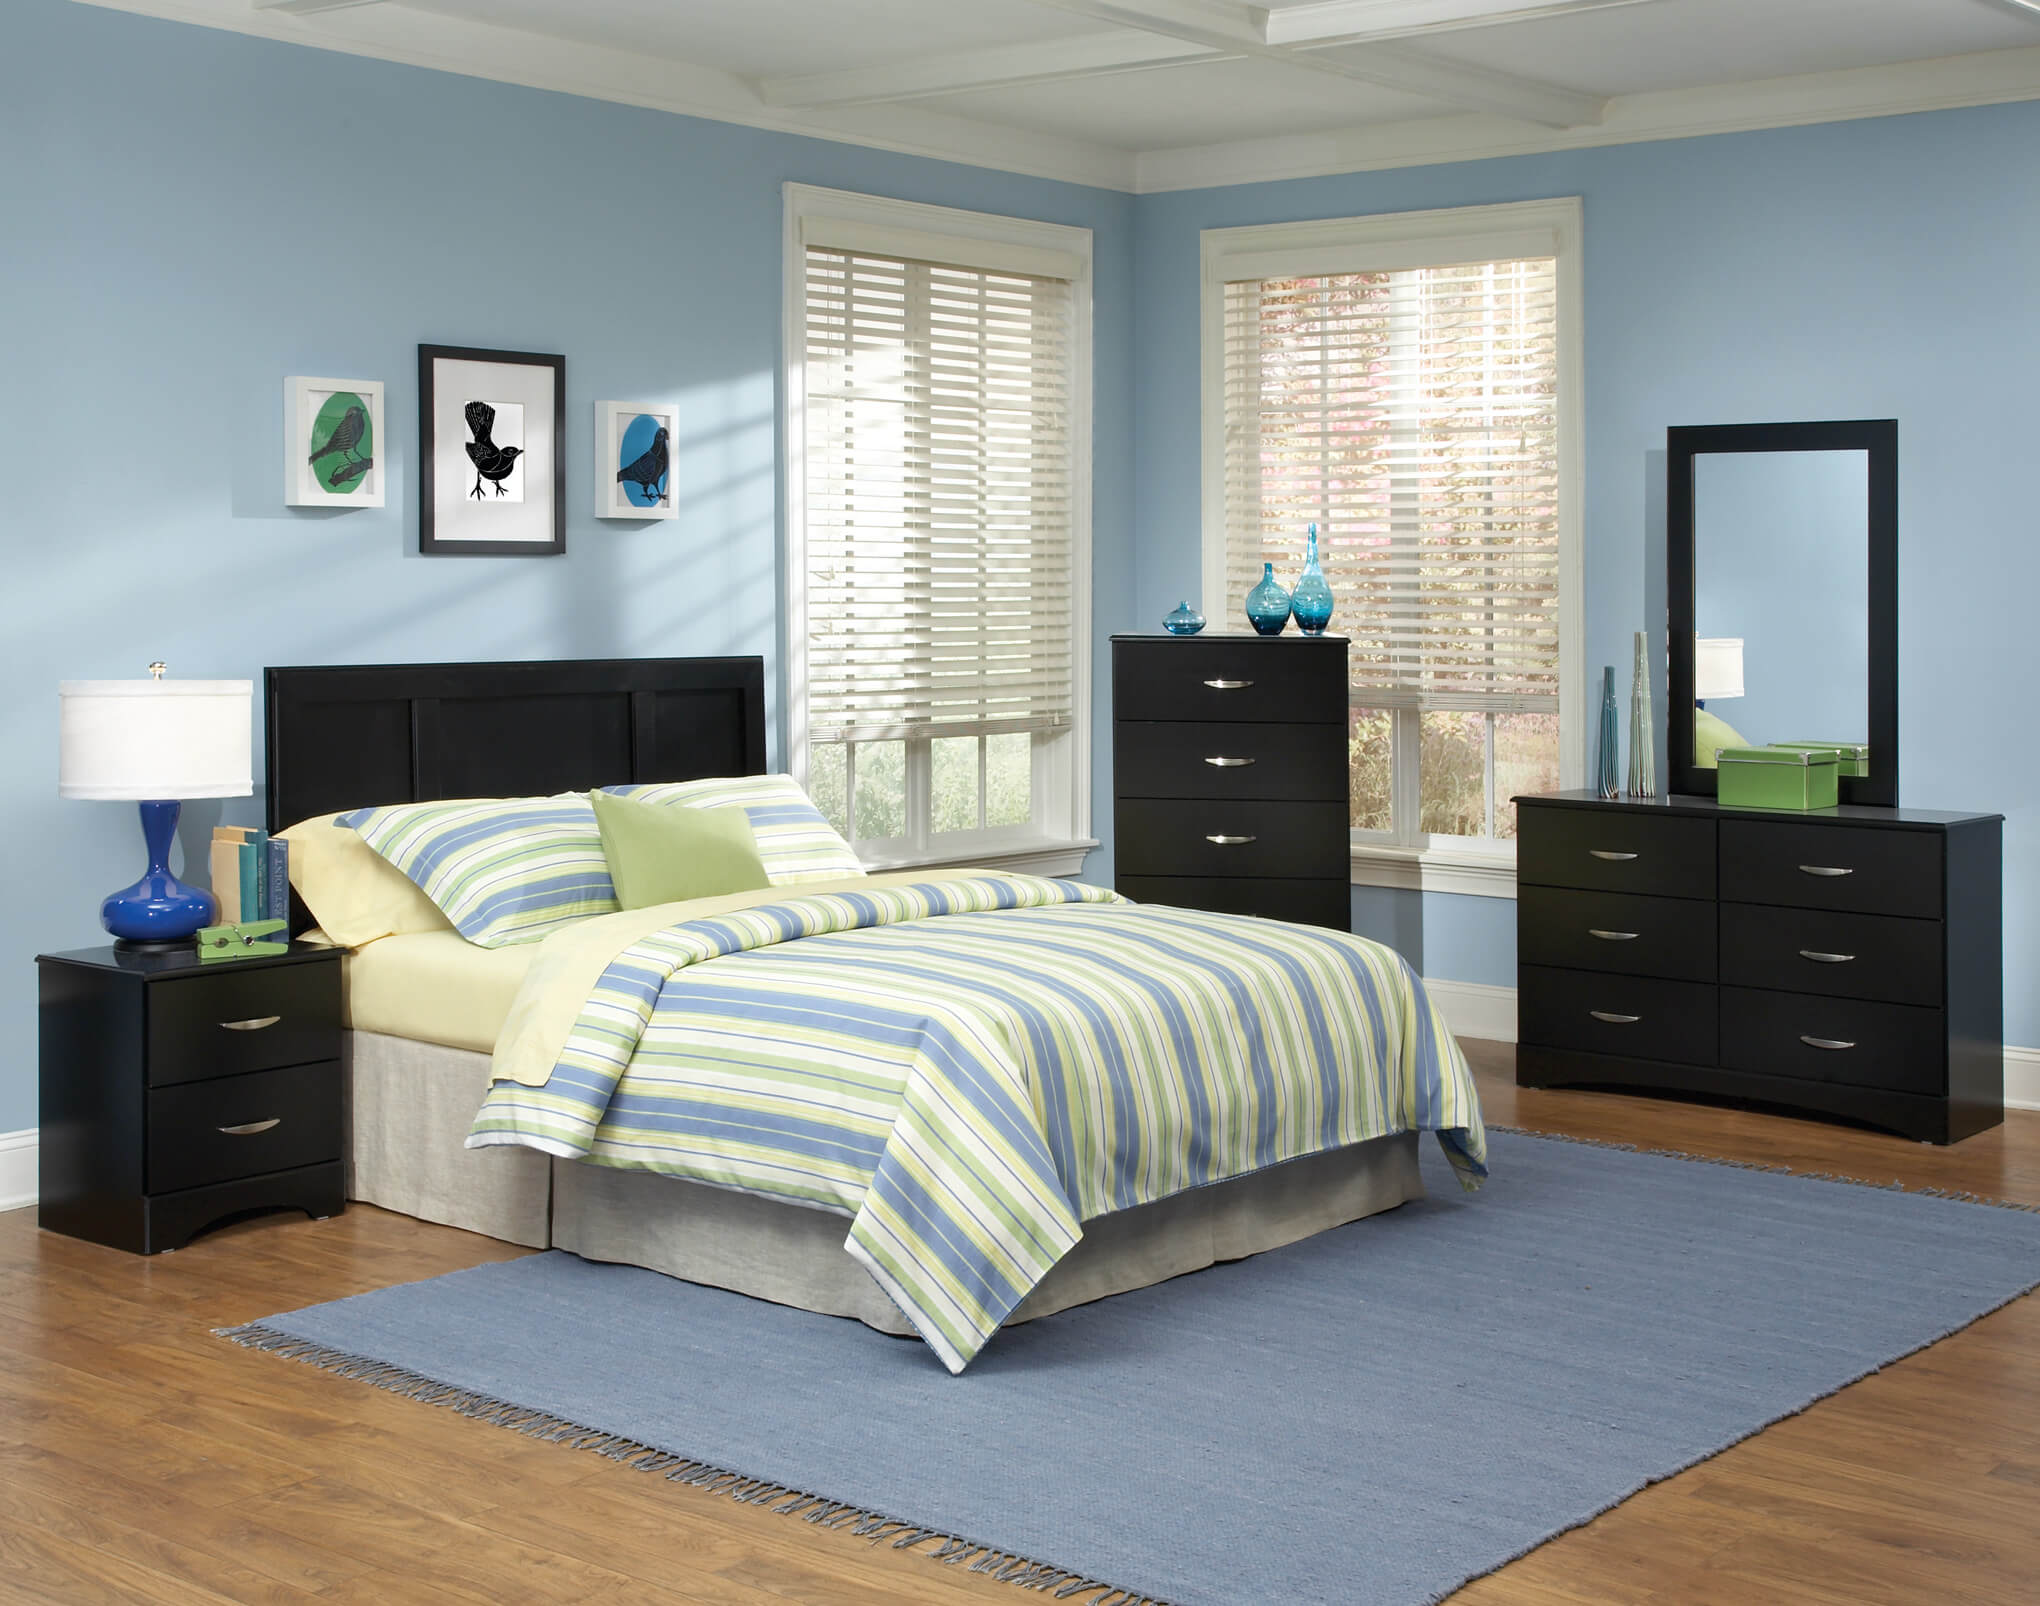 Kith Jacob Black Bedroom Set Bedroom Furniture Sets